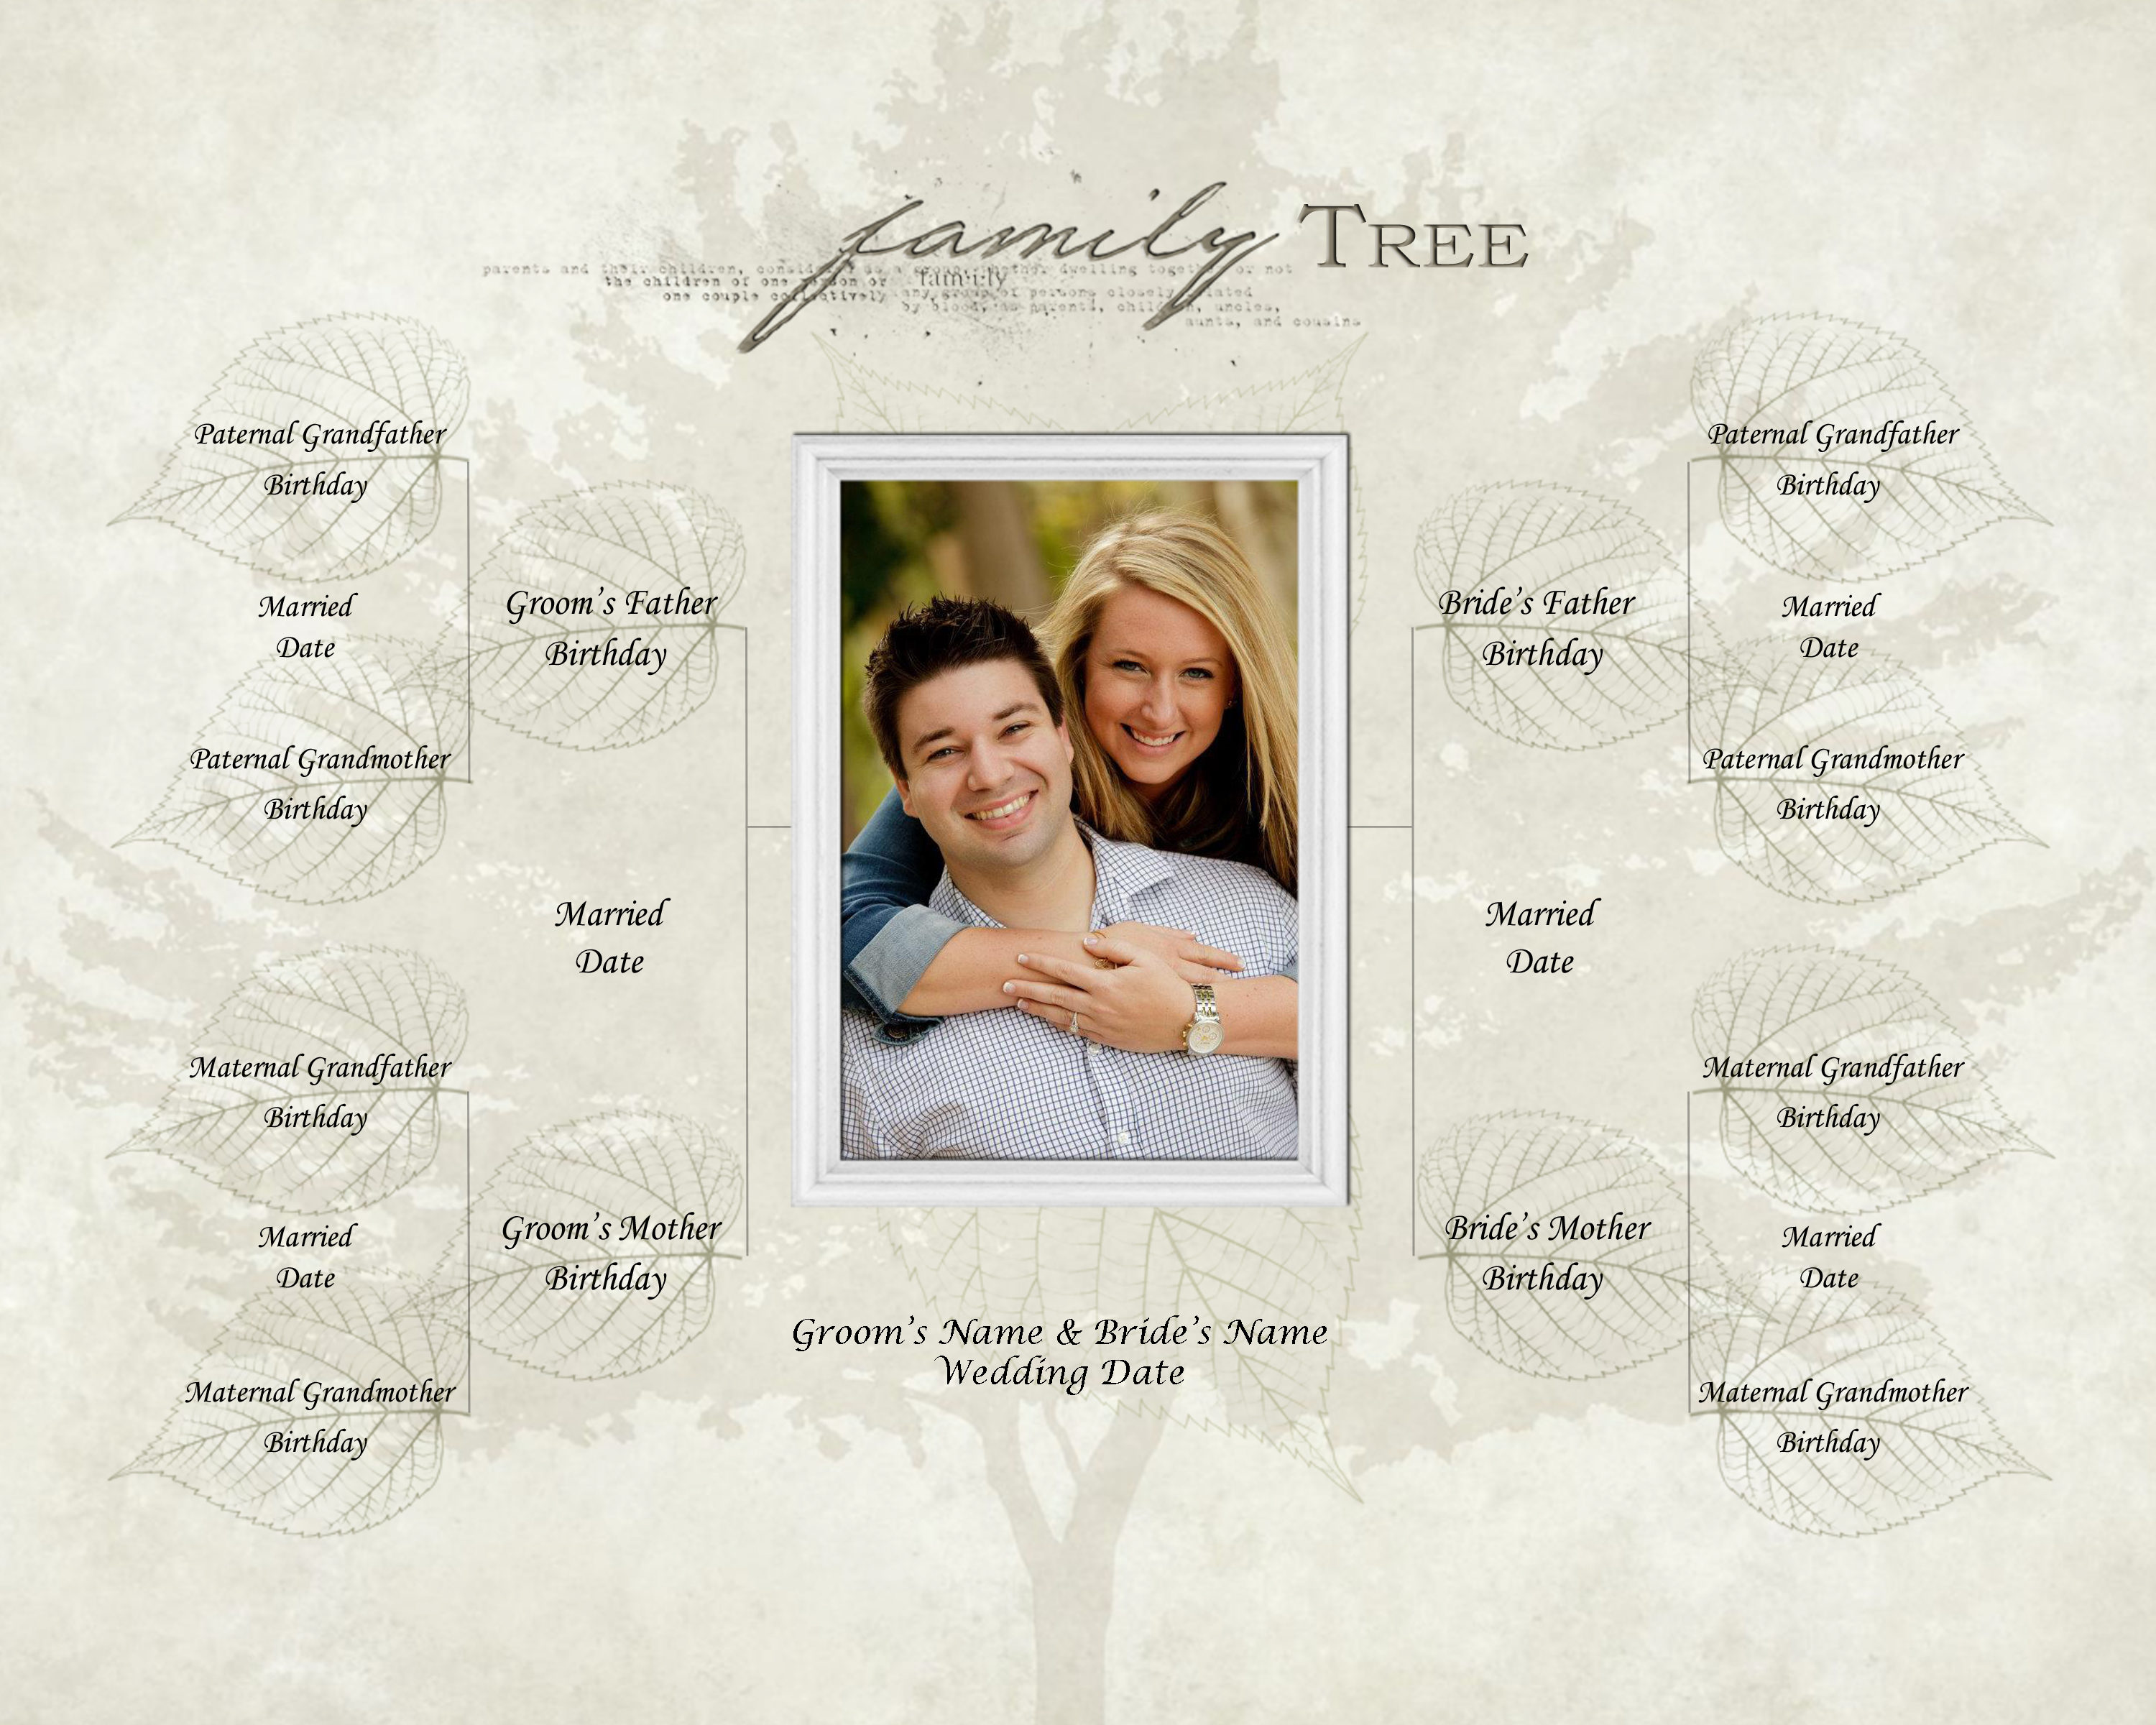 wedding-family-tree-template.jpg